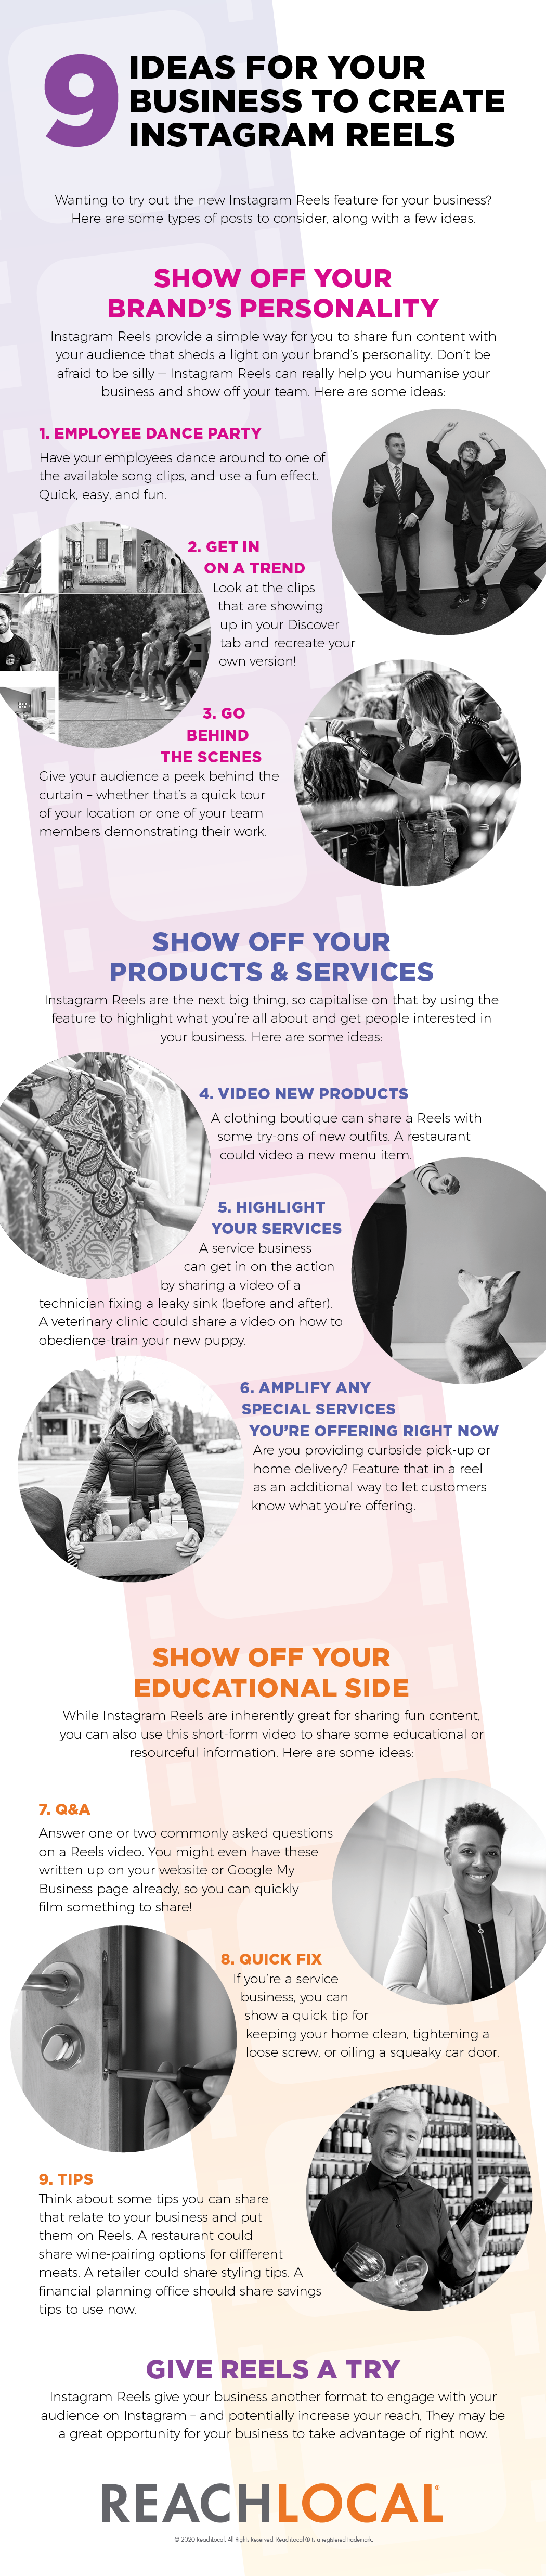 9 Ideas for Your Business to Create Instagram Reels